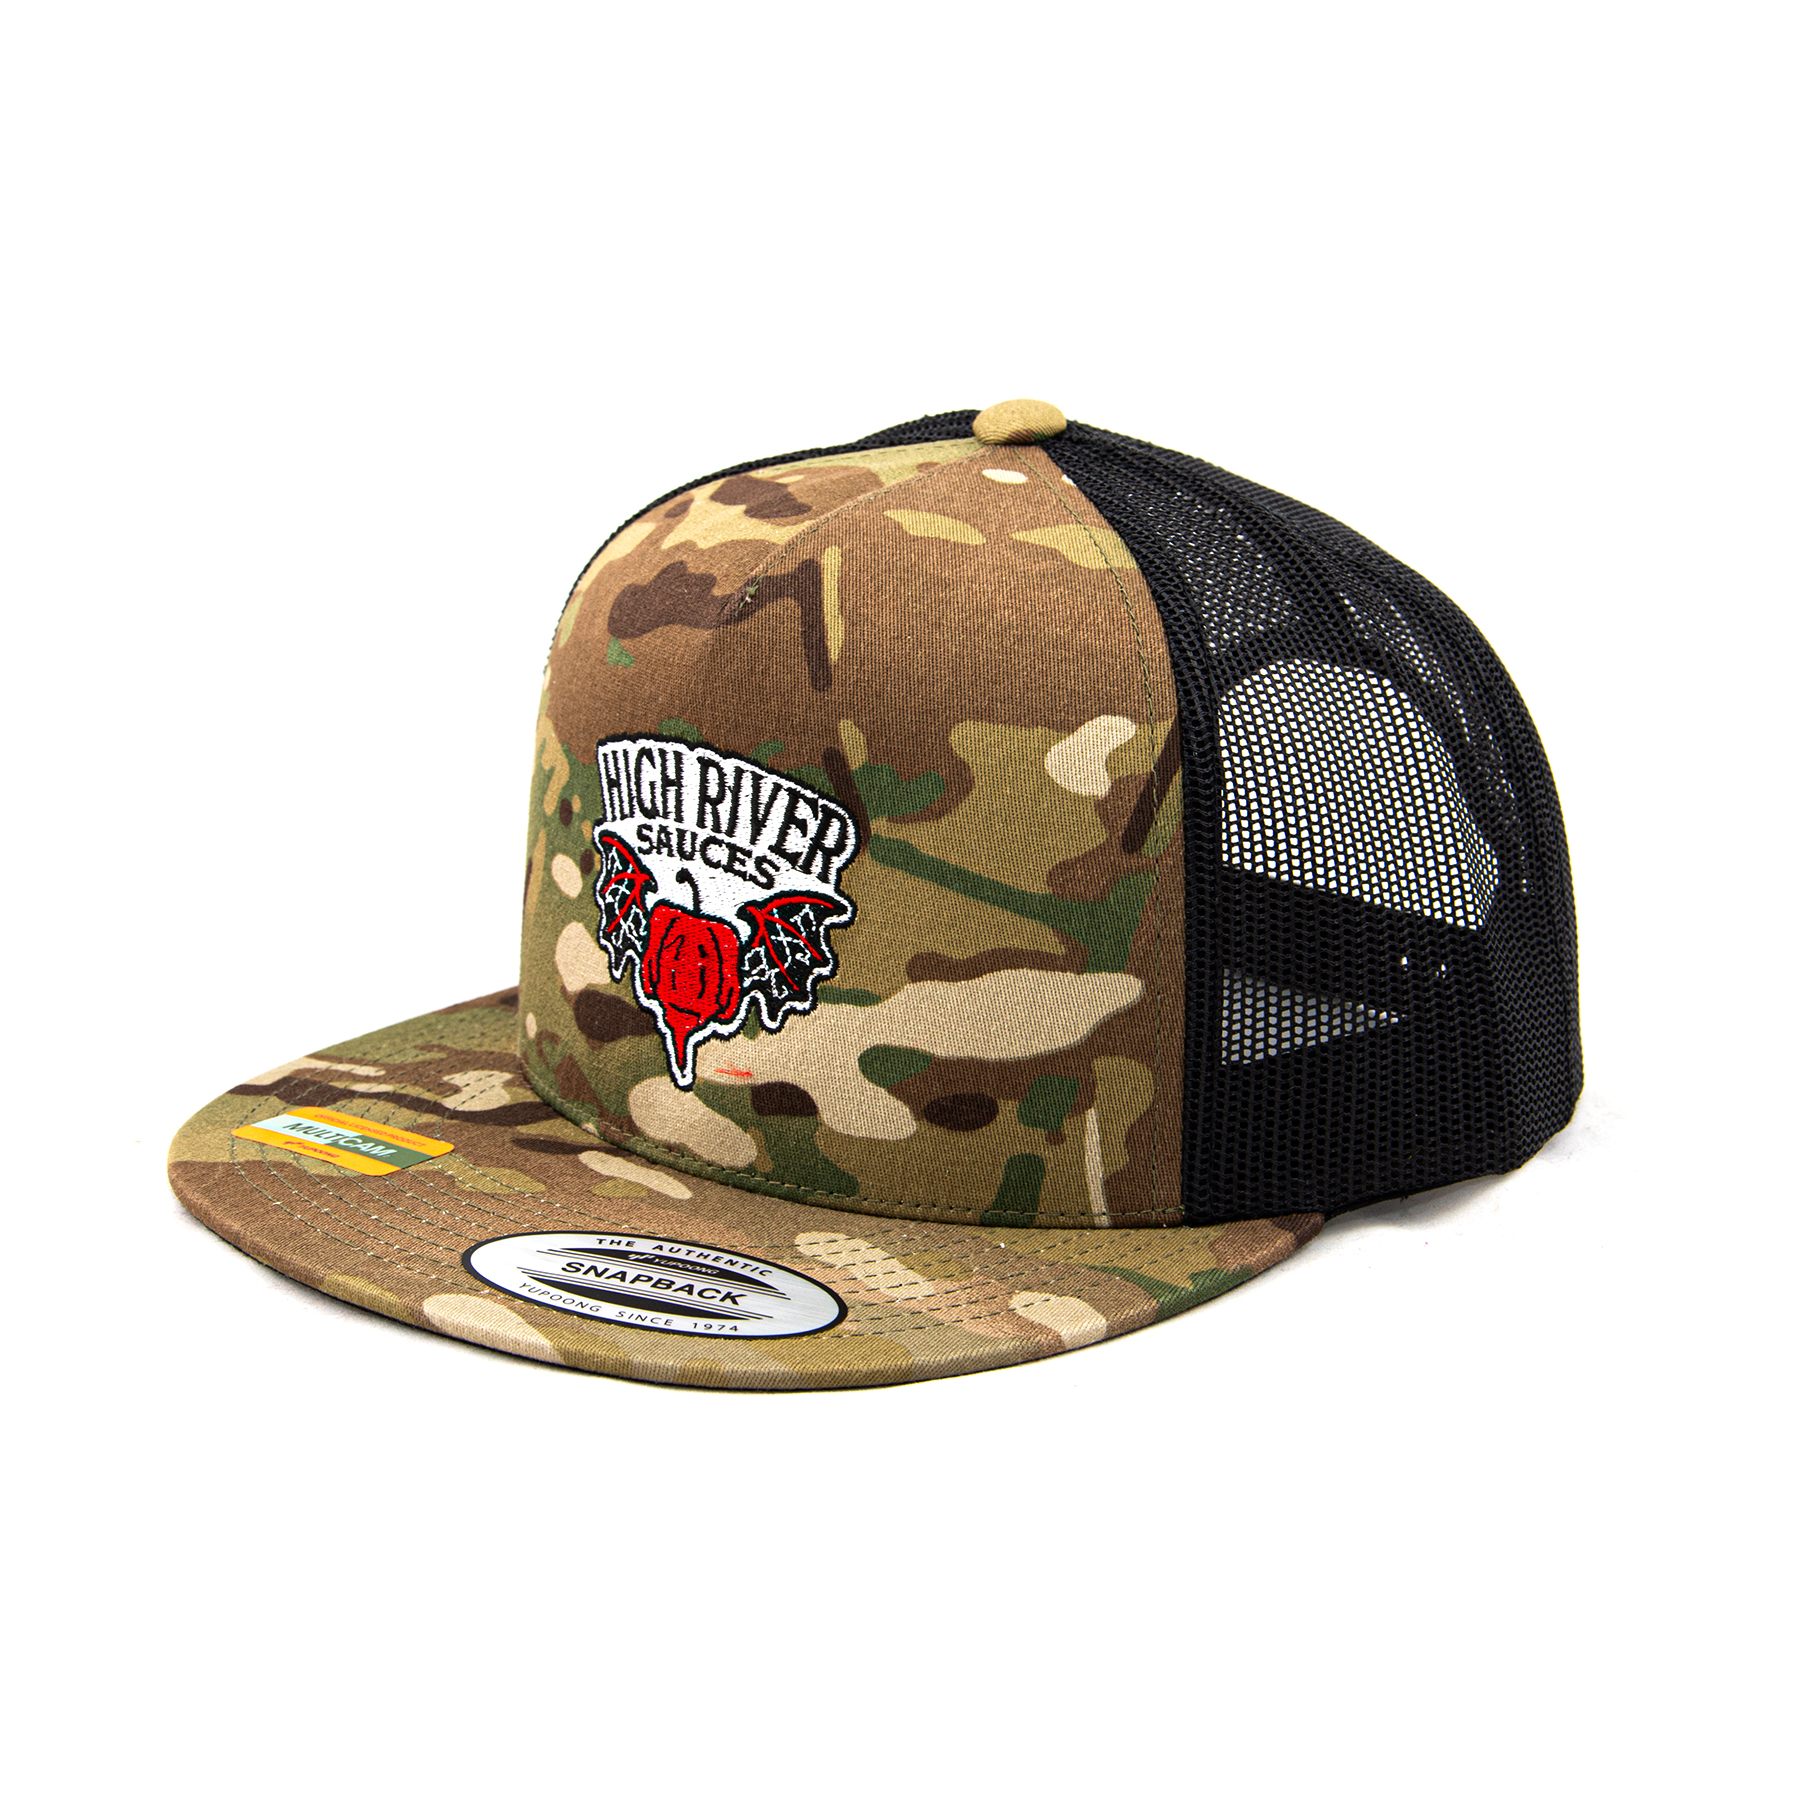 green multicam hat 3/4 view